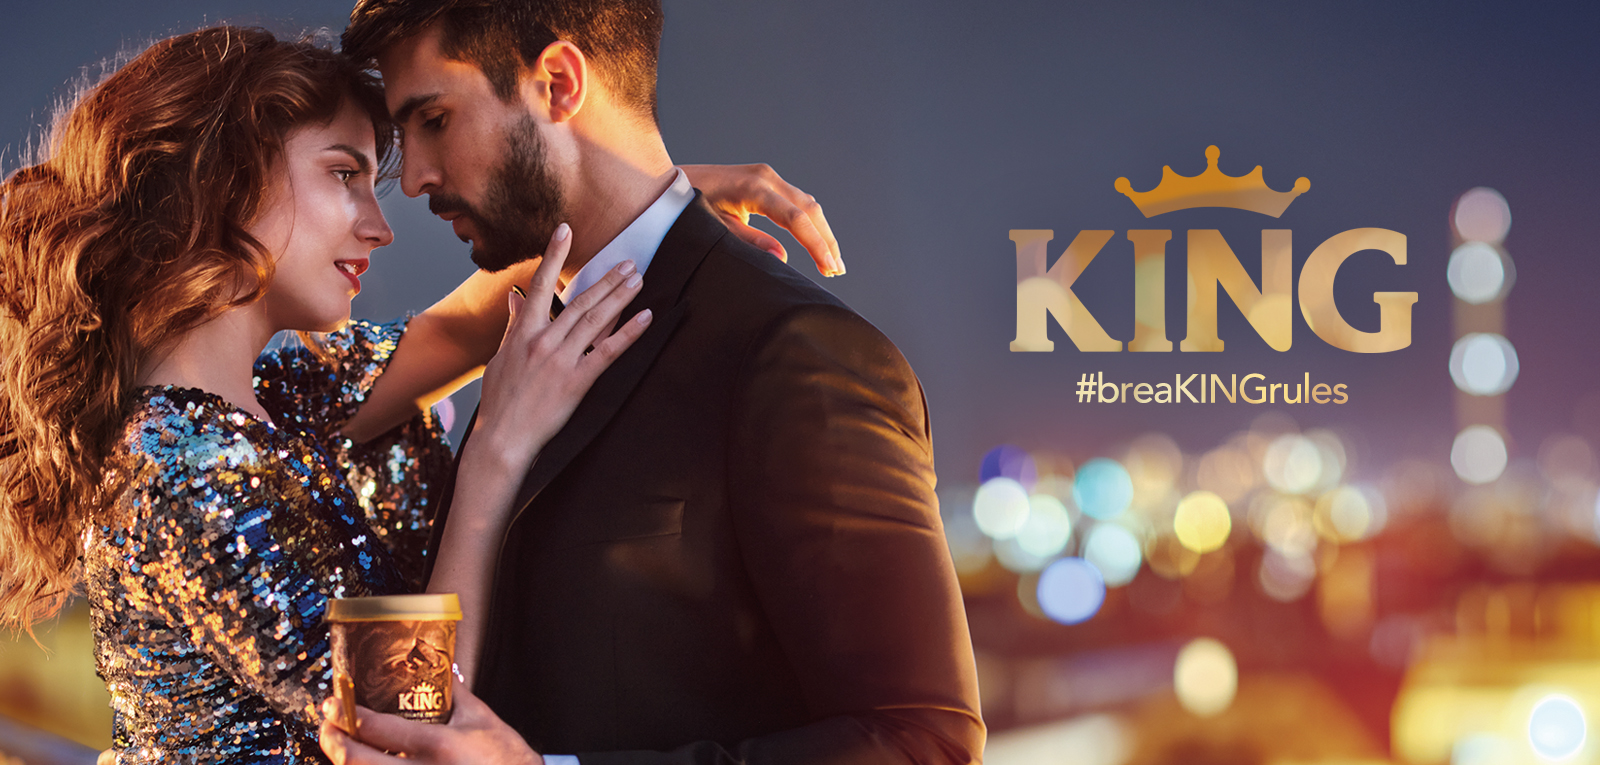 #breaKINGrules 360° campaign and new packaging for King